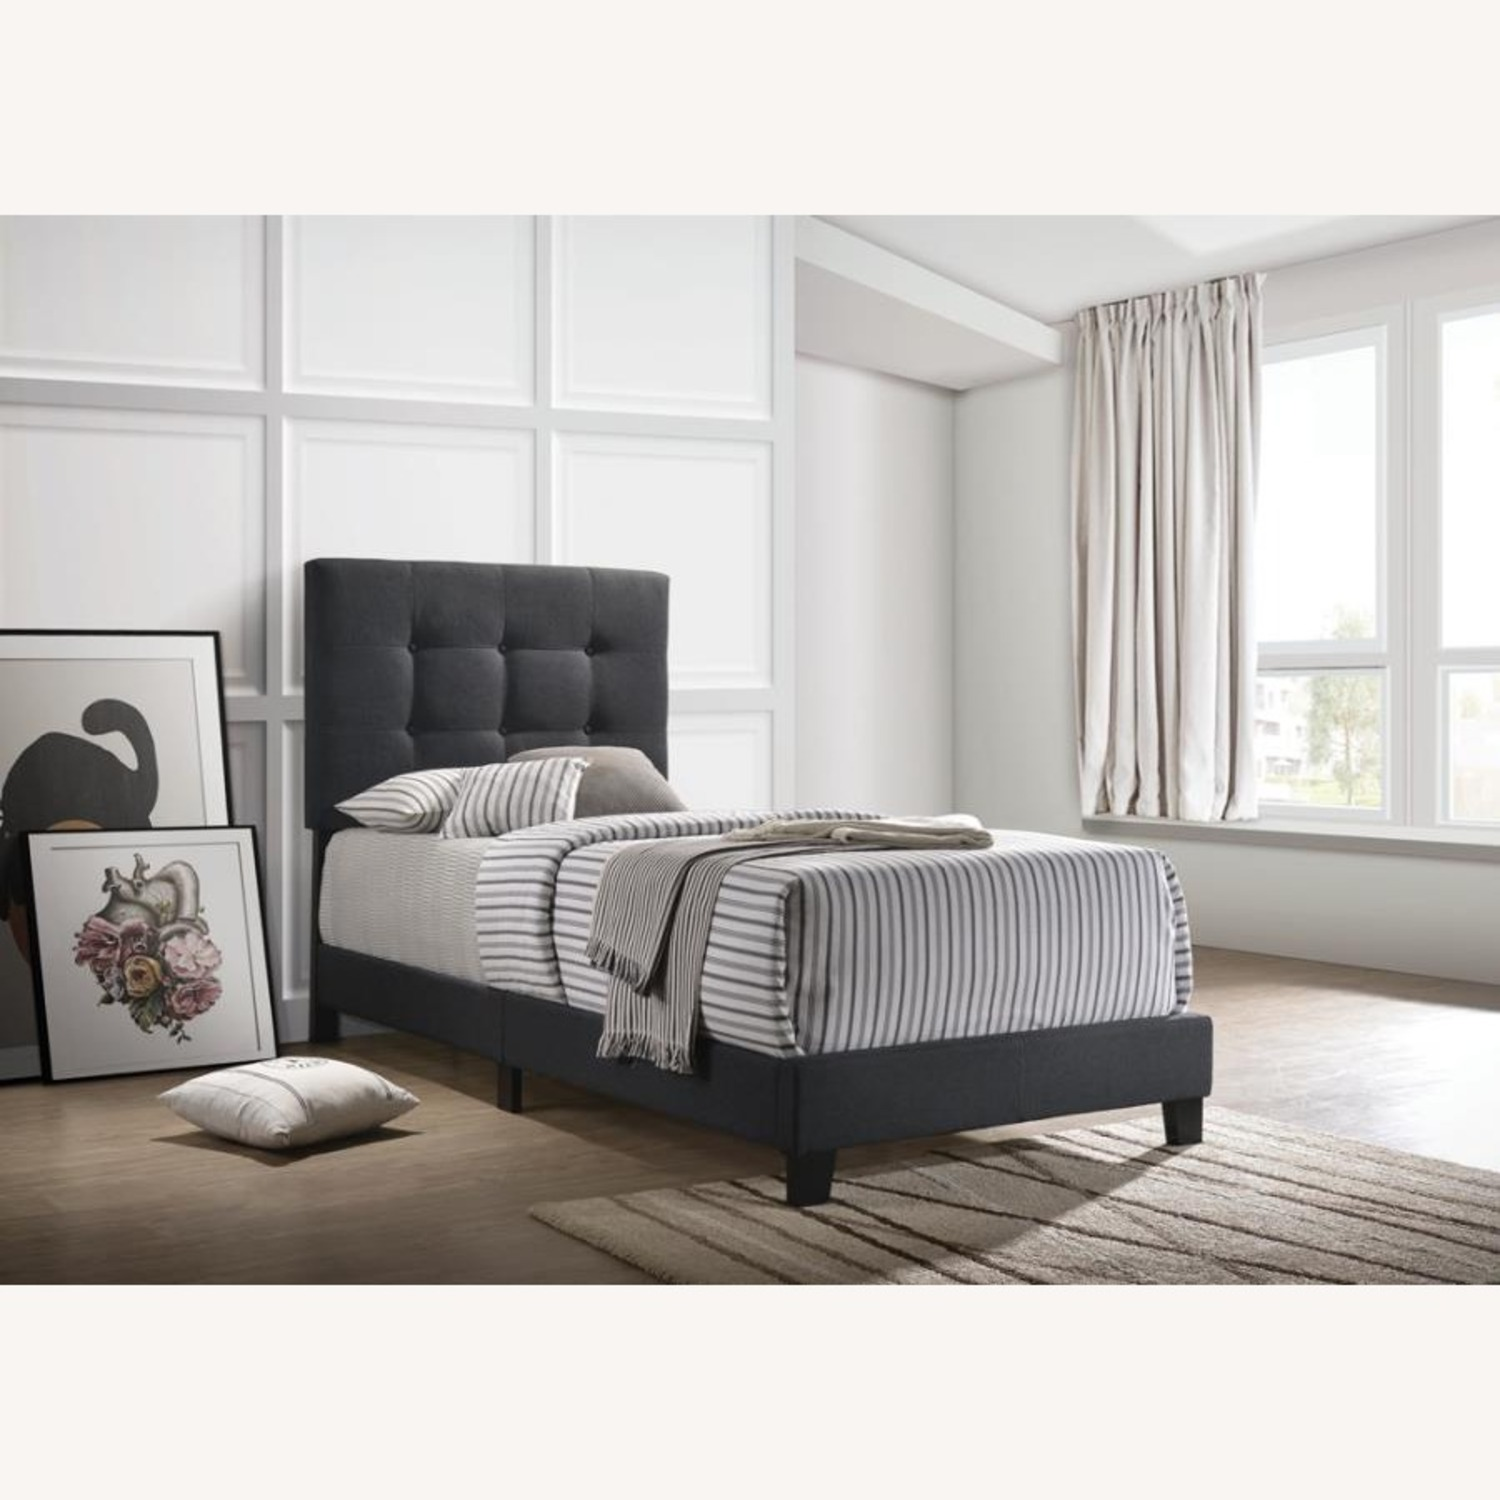 Twin Bed In Charcoal Fabric W/ Button Tufting - image-3